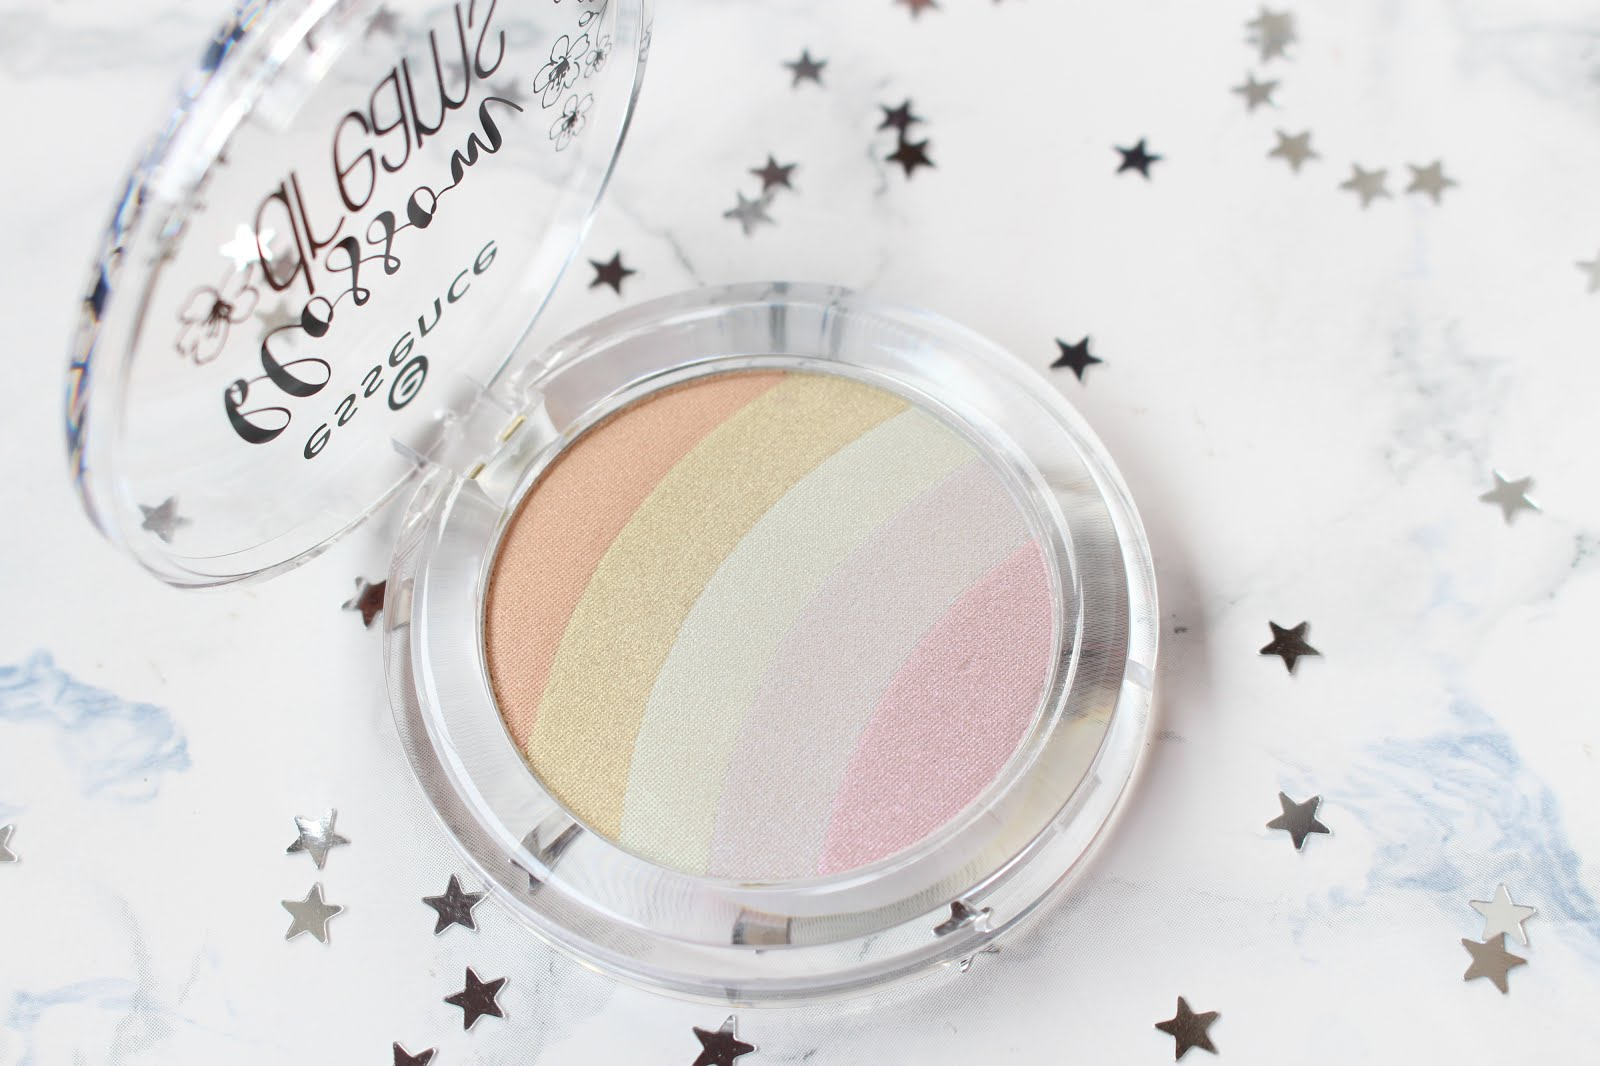 essence regenbogen highlighter, essence rainbow highlighter, essence blossom dreams, rainbow highlighter, highlighter, trends 2017, make up trends 2017